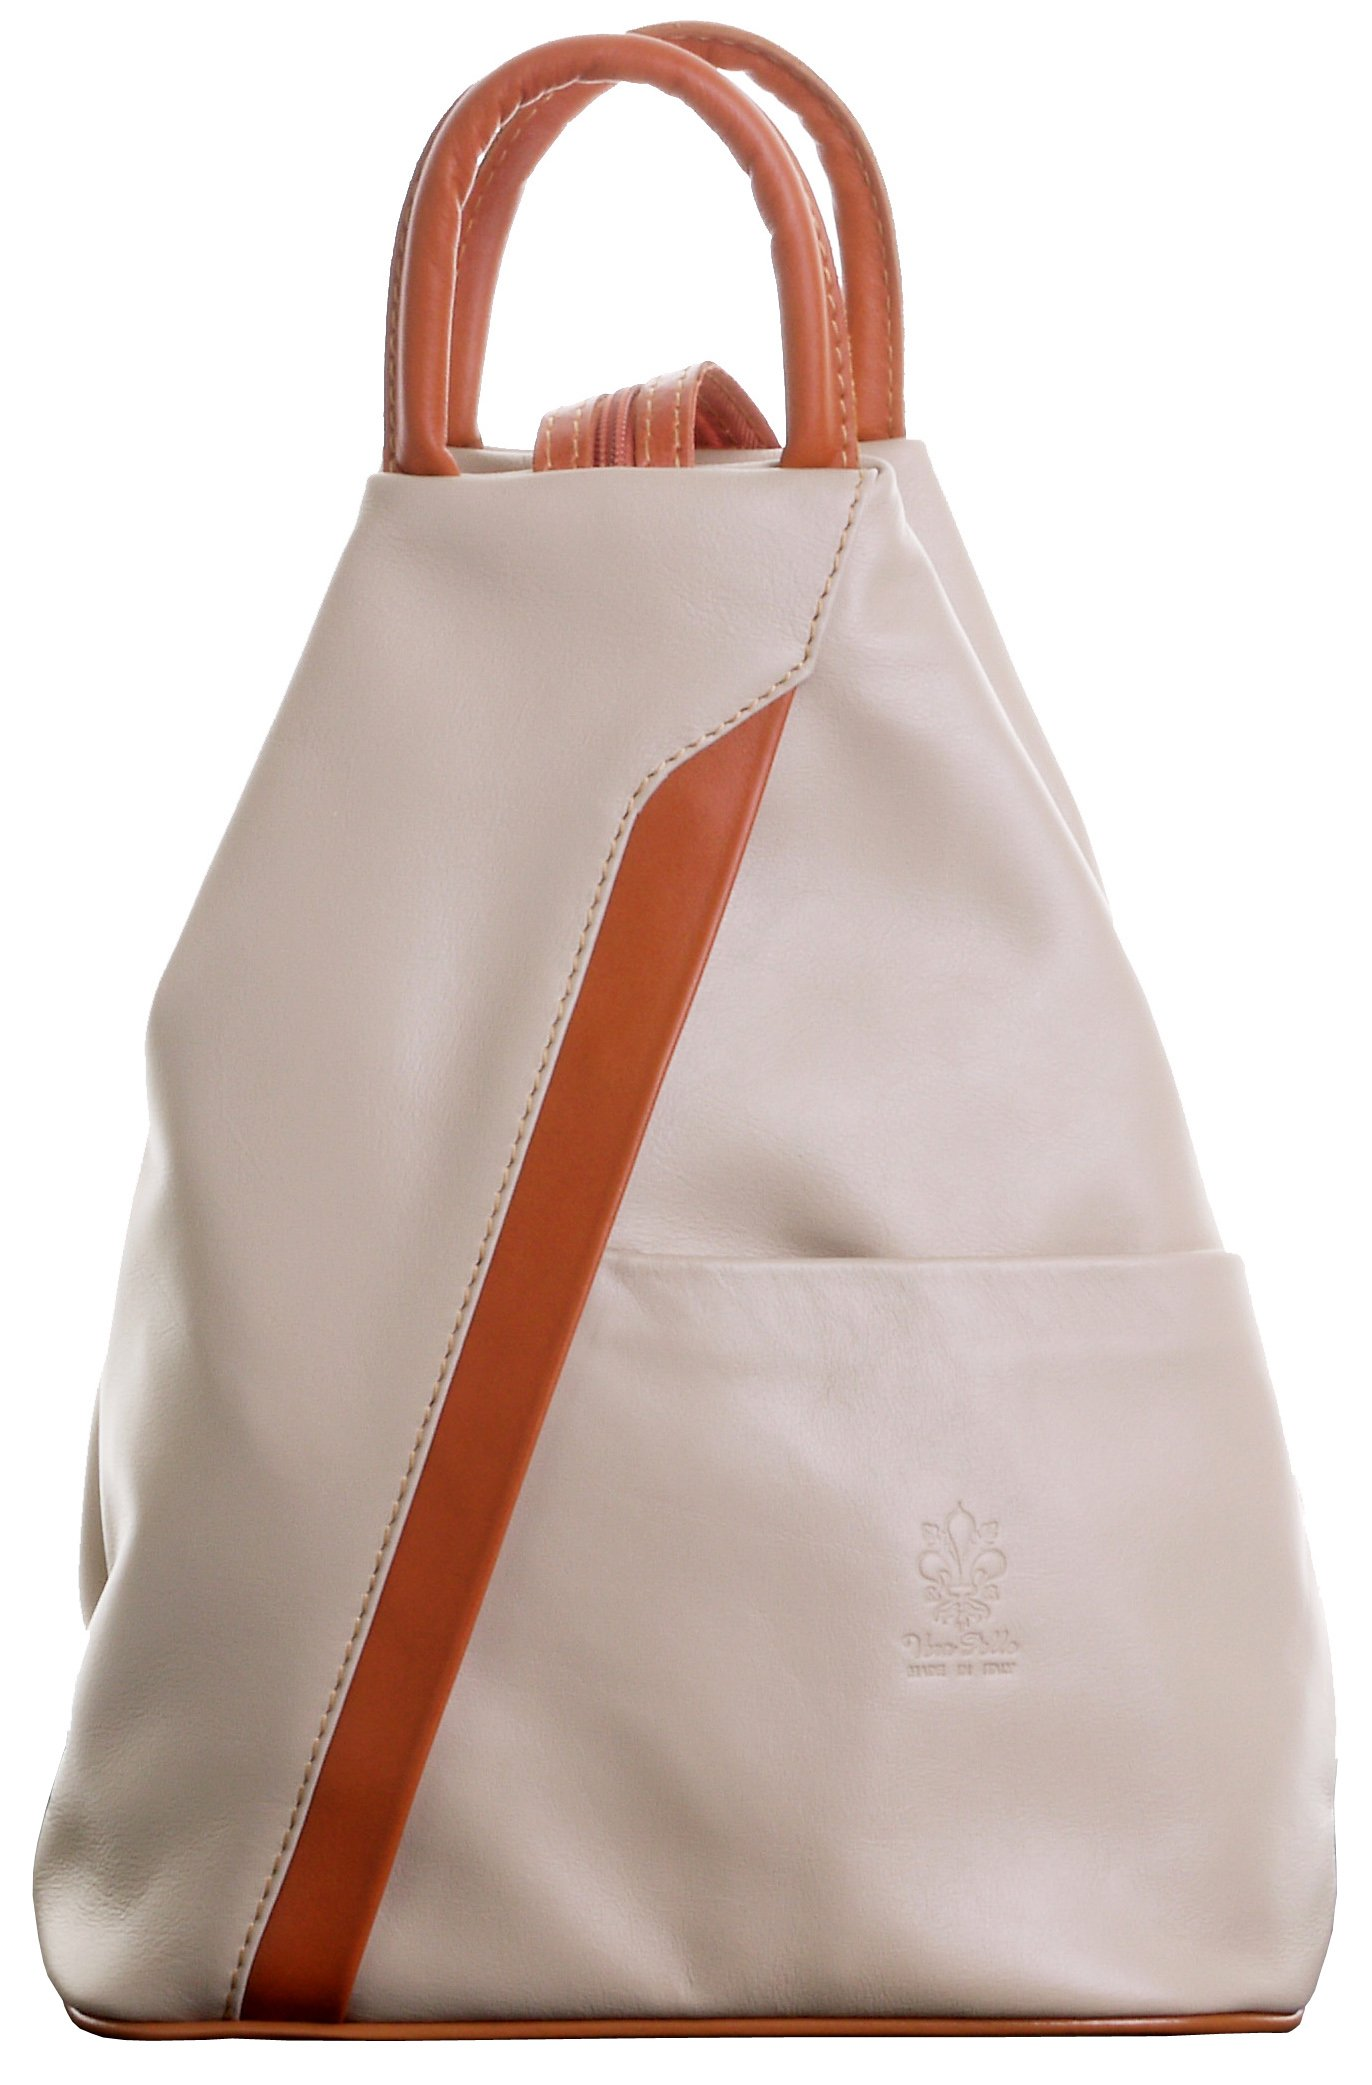 Italian Soft Napa Light Beige & Tan Leather Top Handle Shoulder Bag Rucksack Backpack. Includes Branded Protective Storage Bag